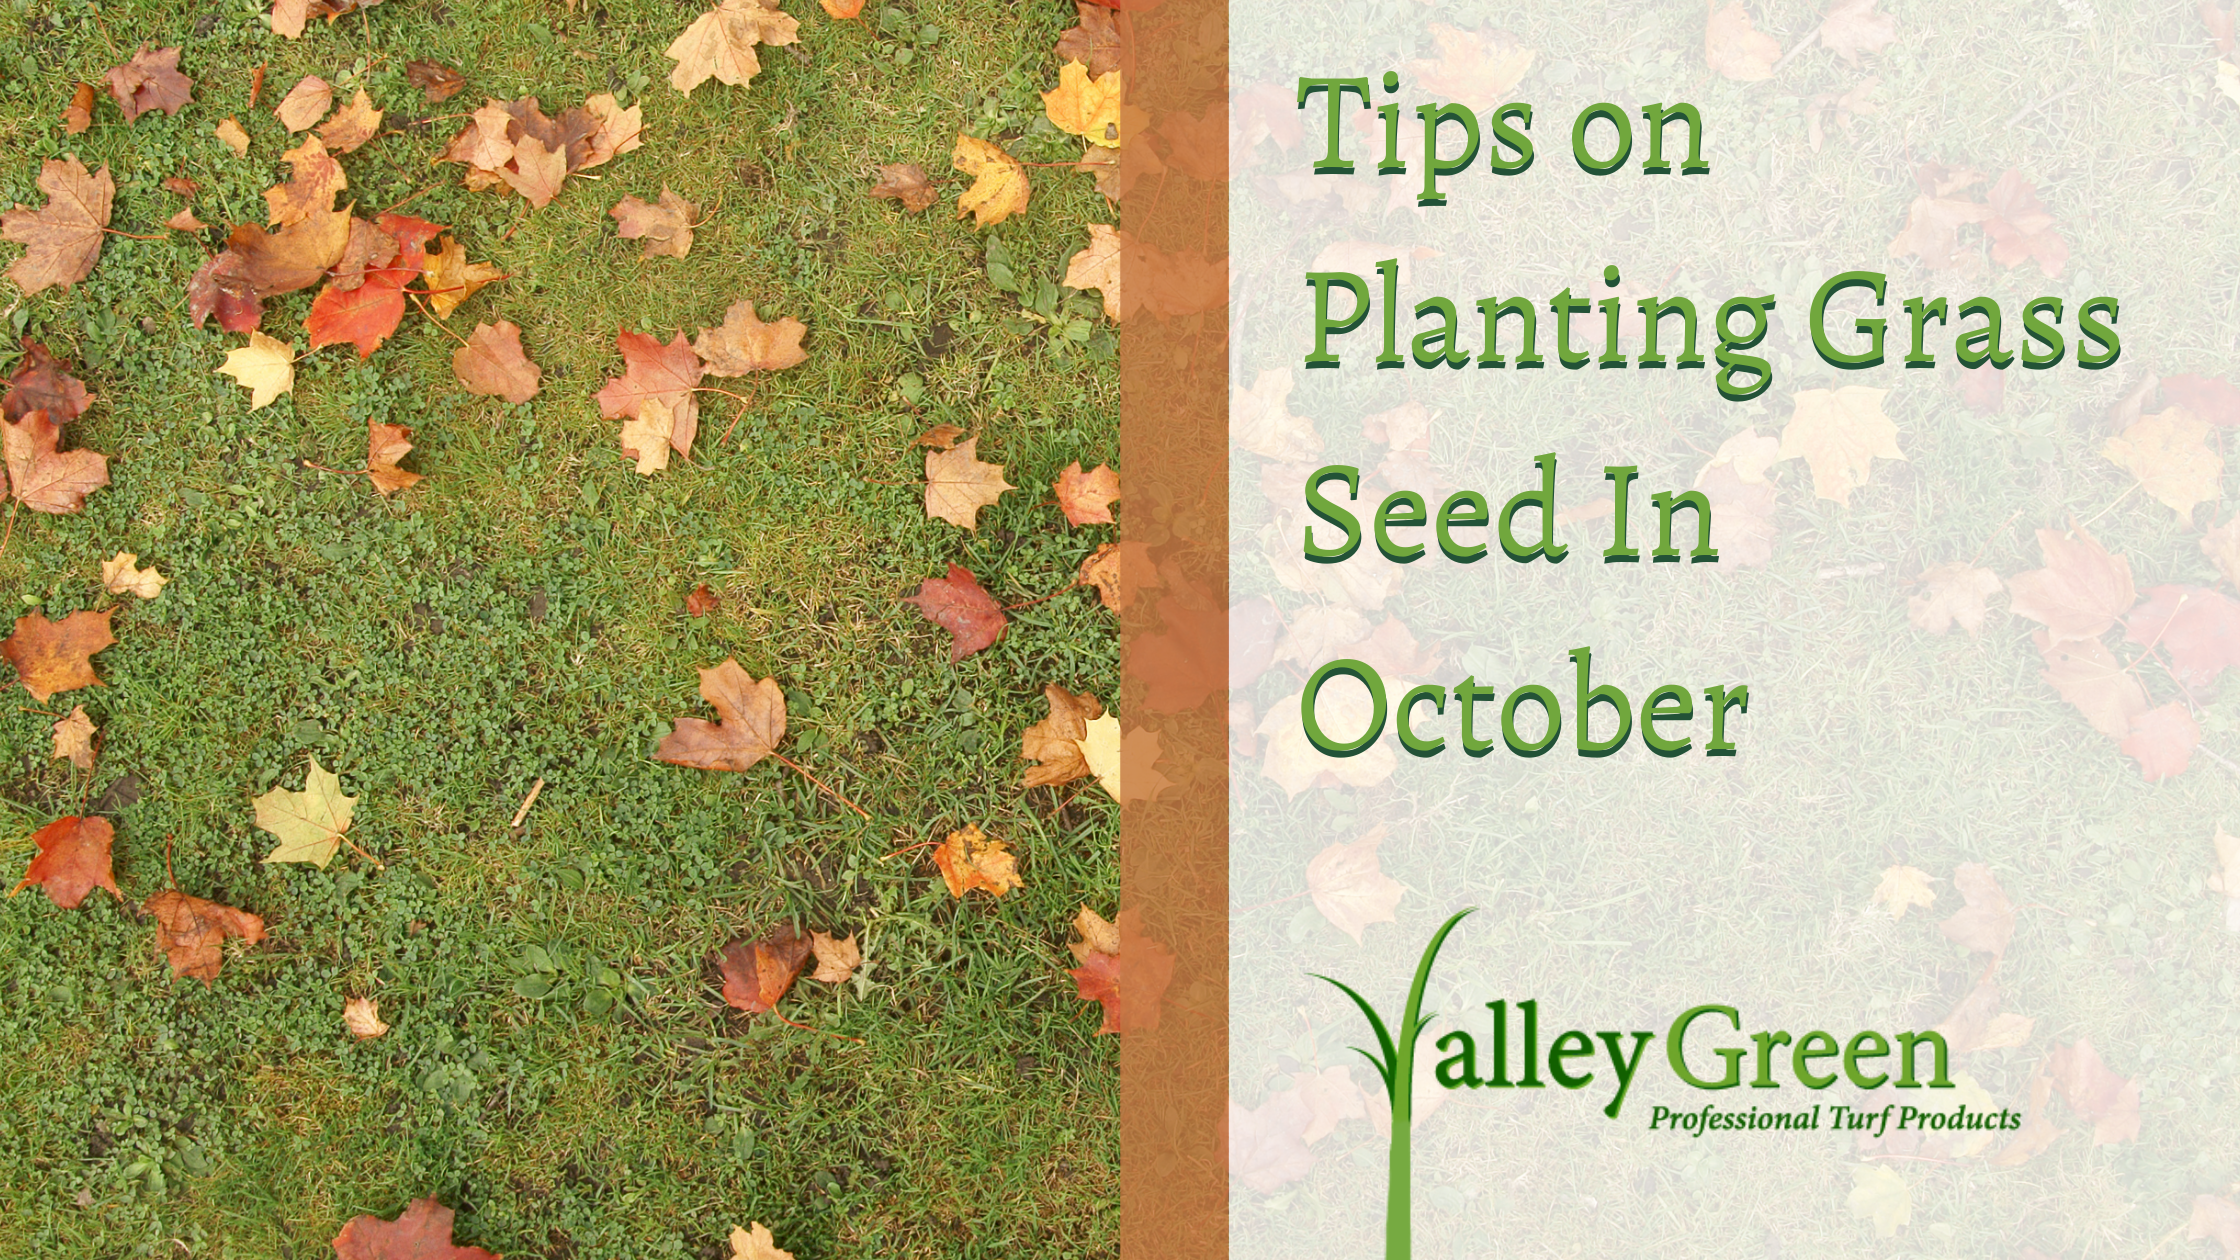 Tips on Planting Grass Seed In October